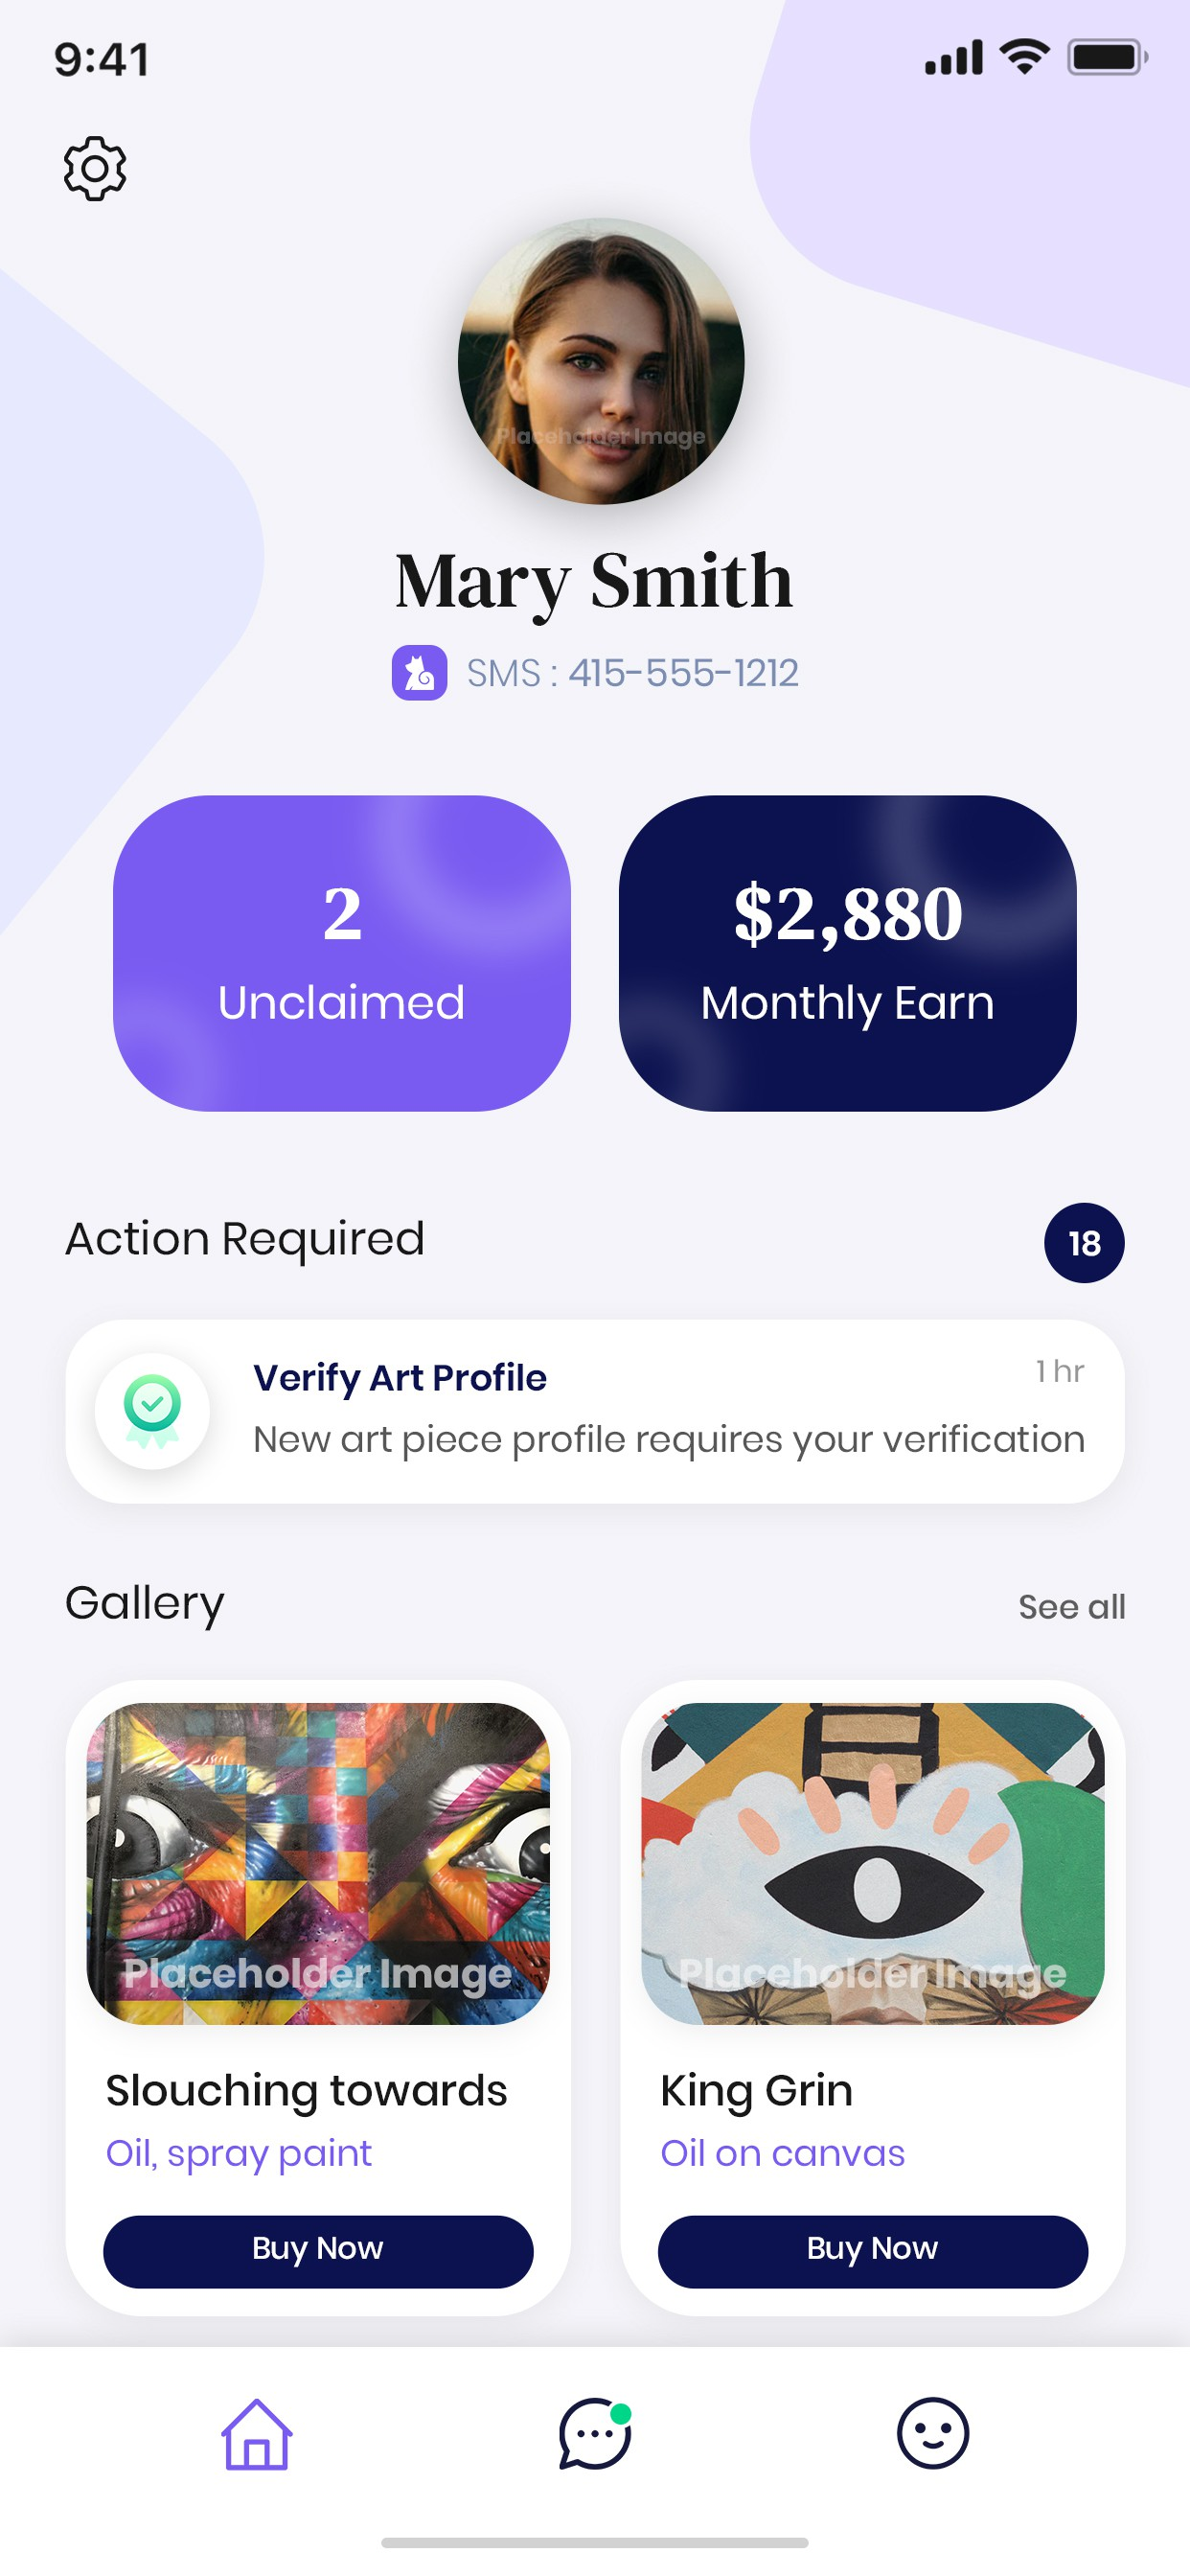 [URGENT] We need a BEAUTIFUL home screen for our NEW art mobile app